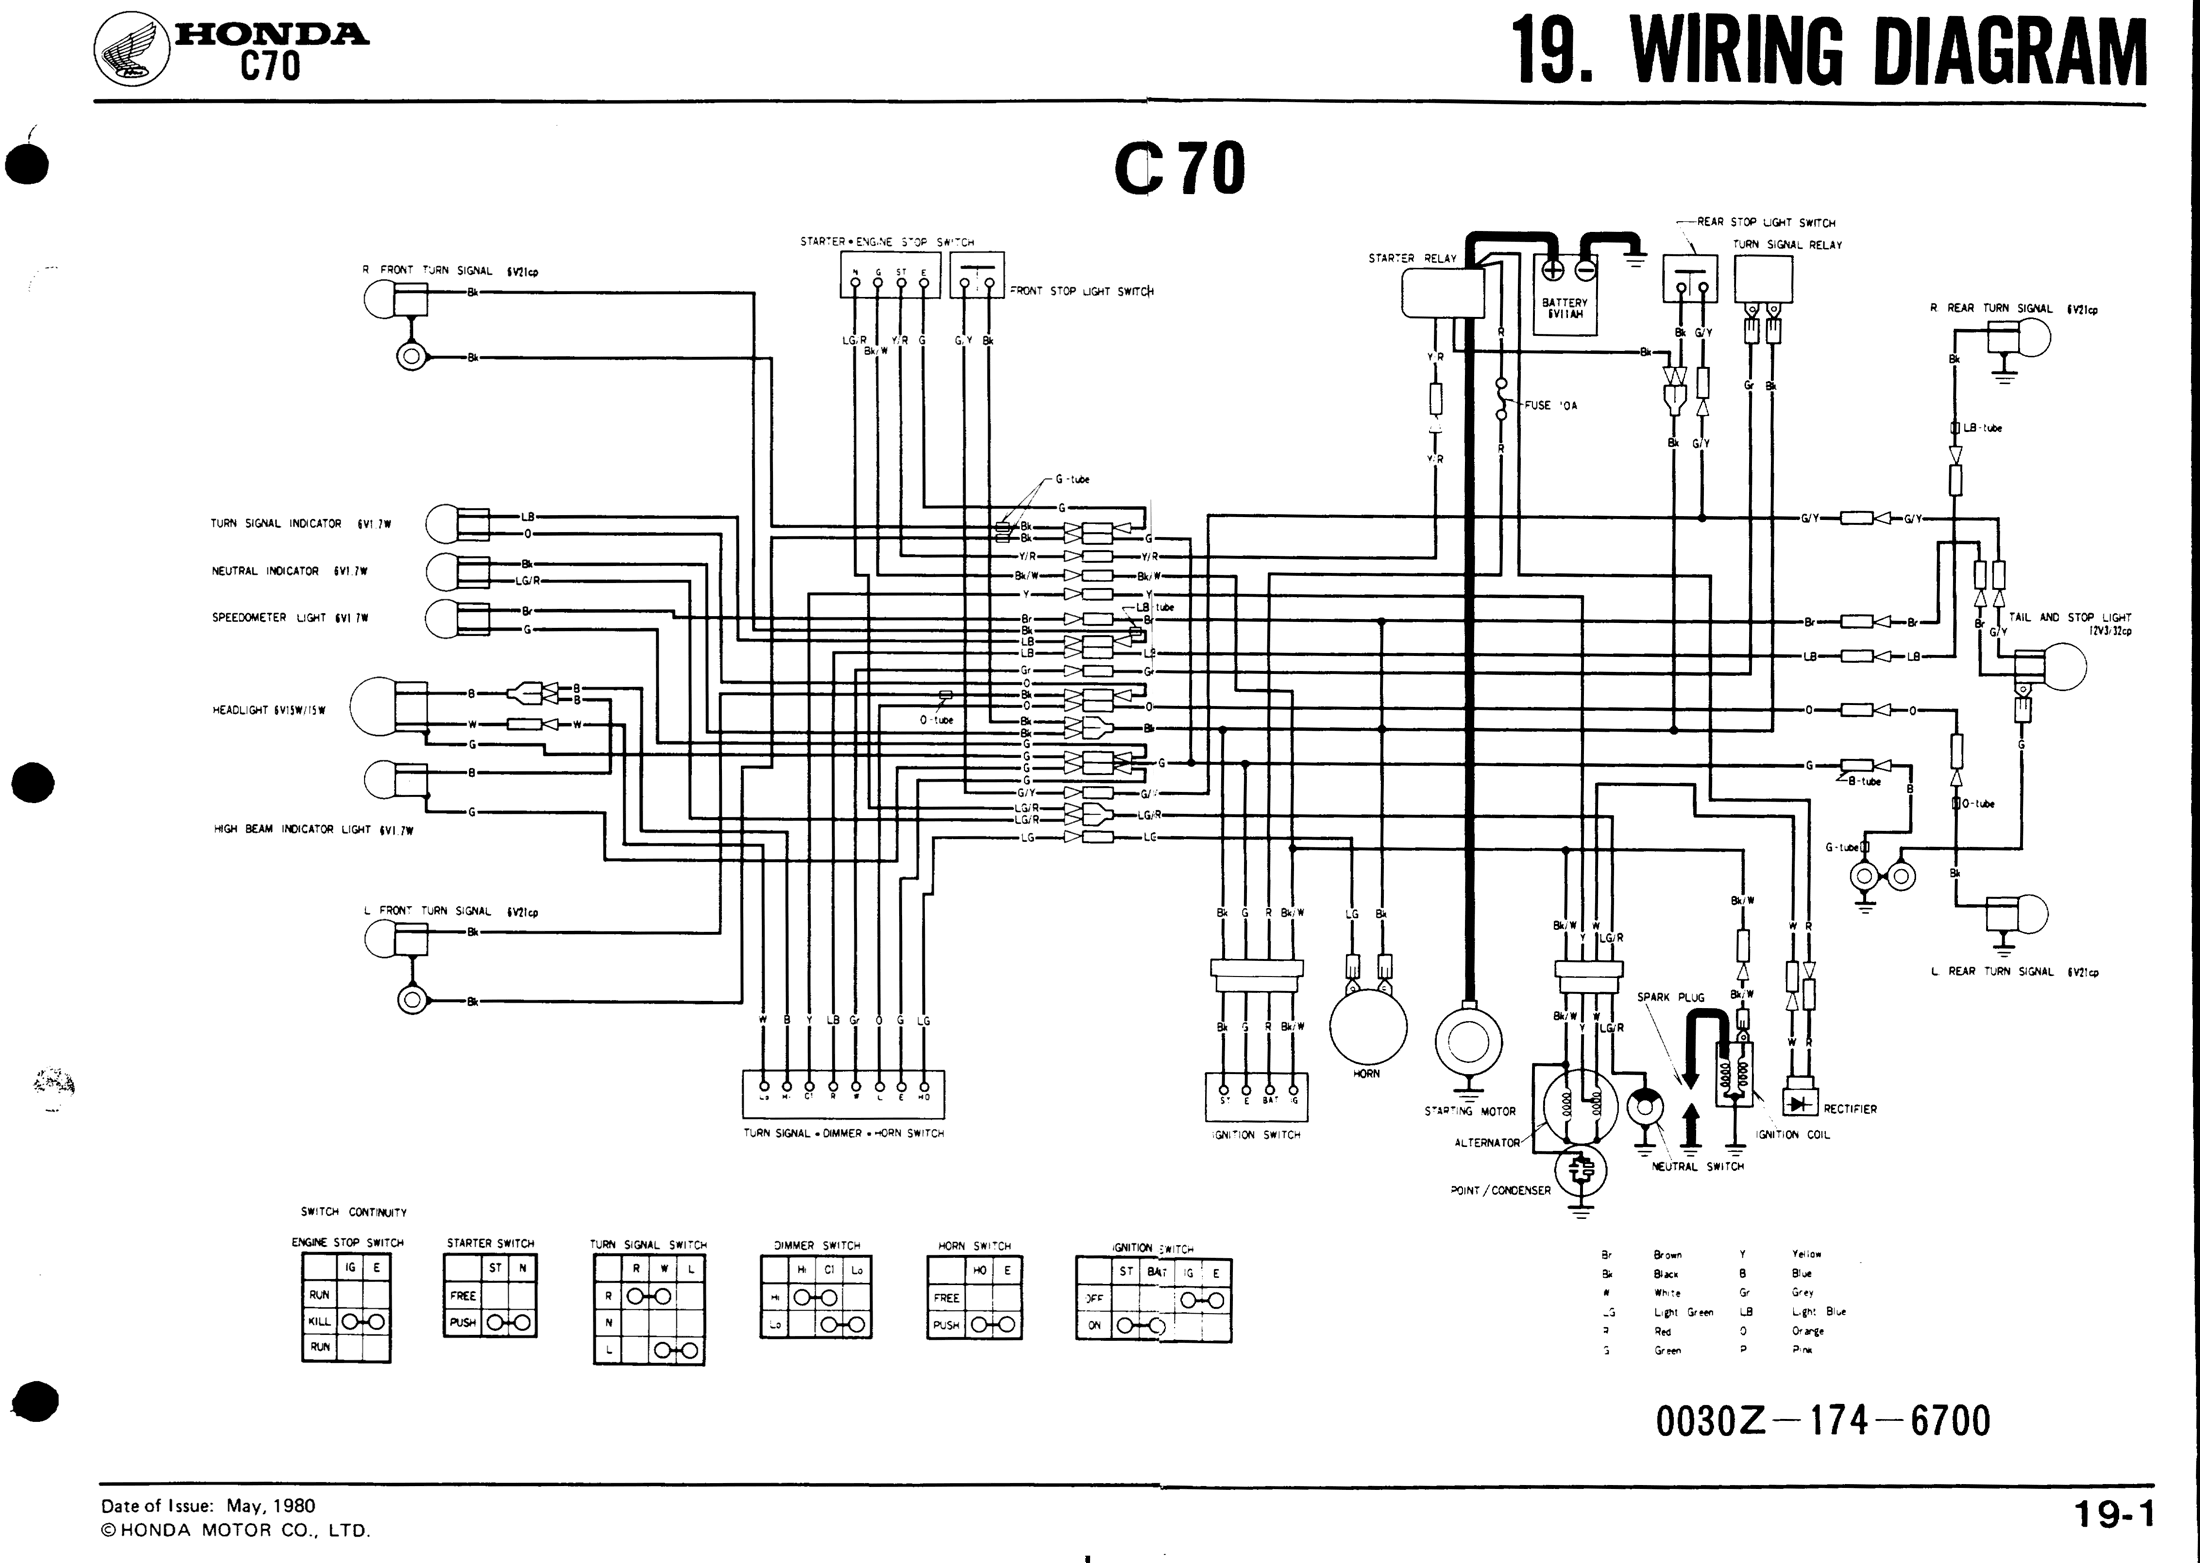 1980 honda twin star wiring diagram picture wiring diagram